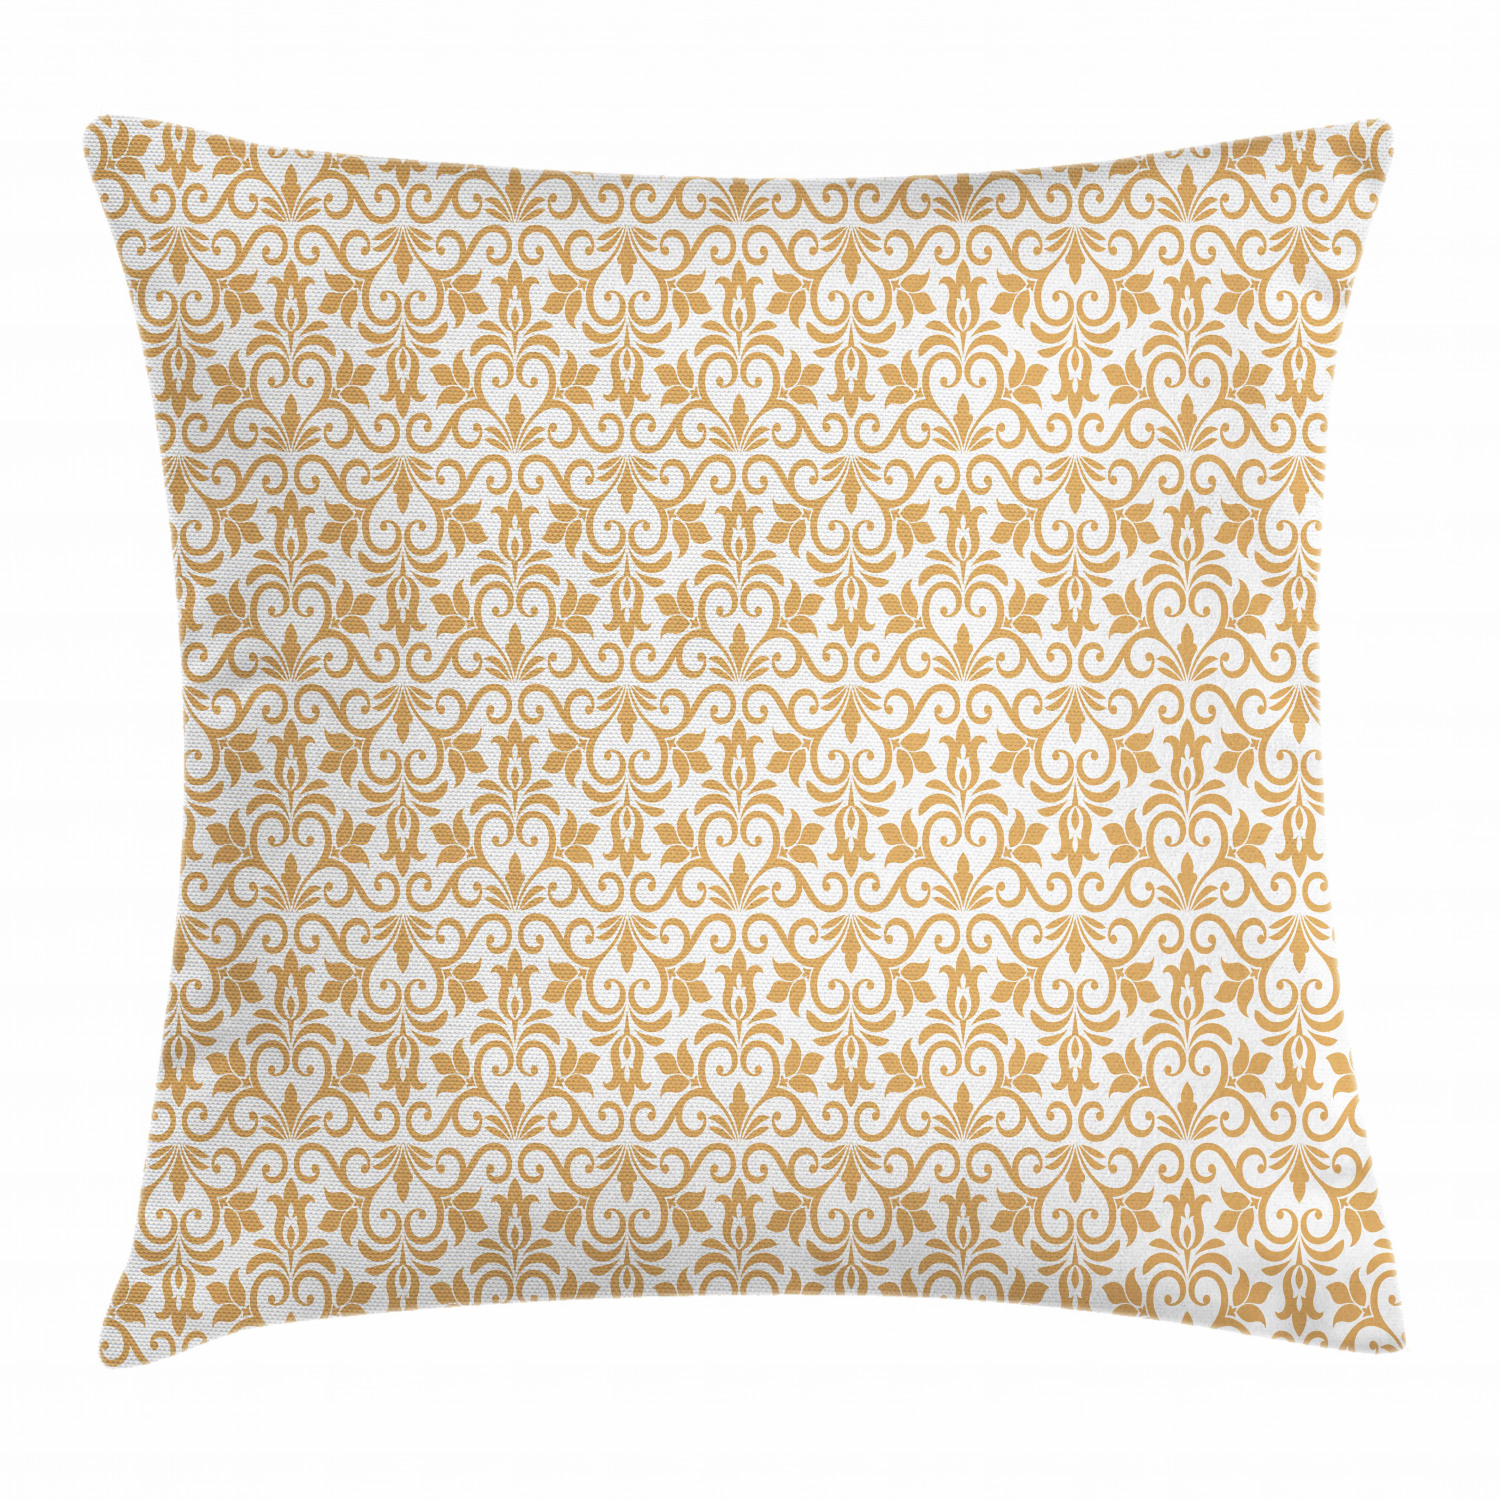 Yellow And White Throw Pillow Cases Cushion Covers Ambesonne Home Decor 8 Sizes